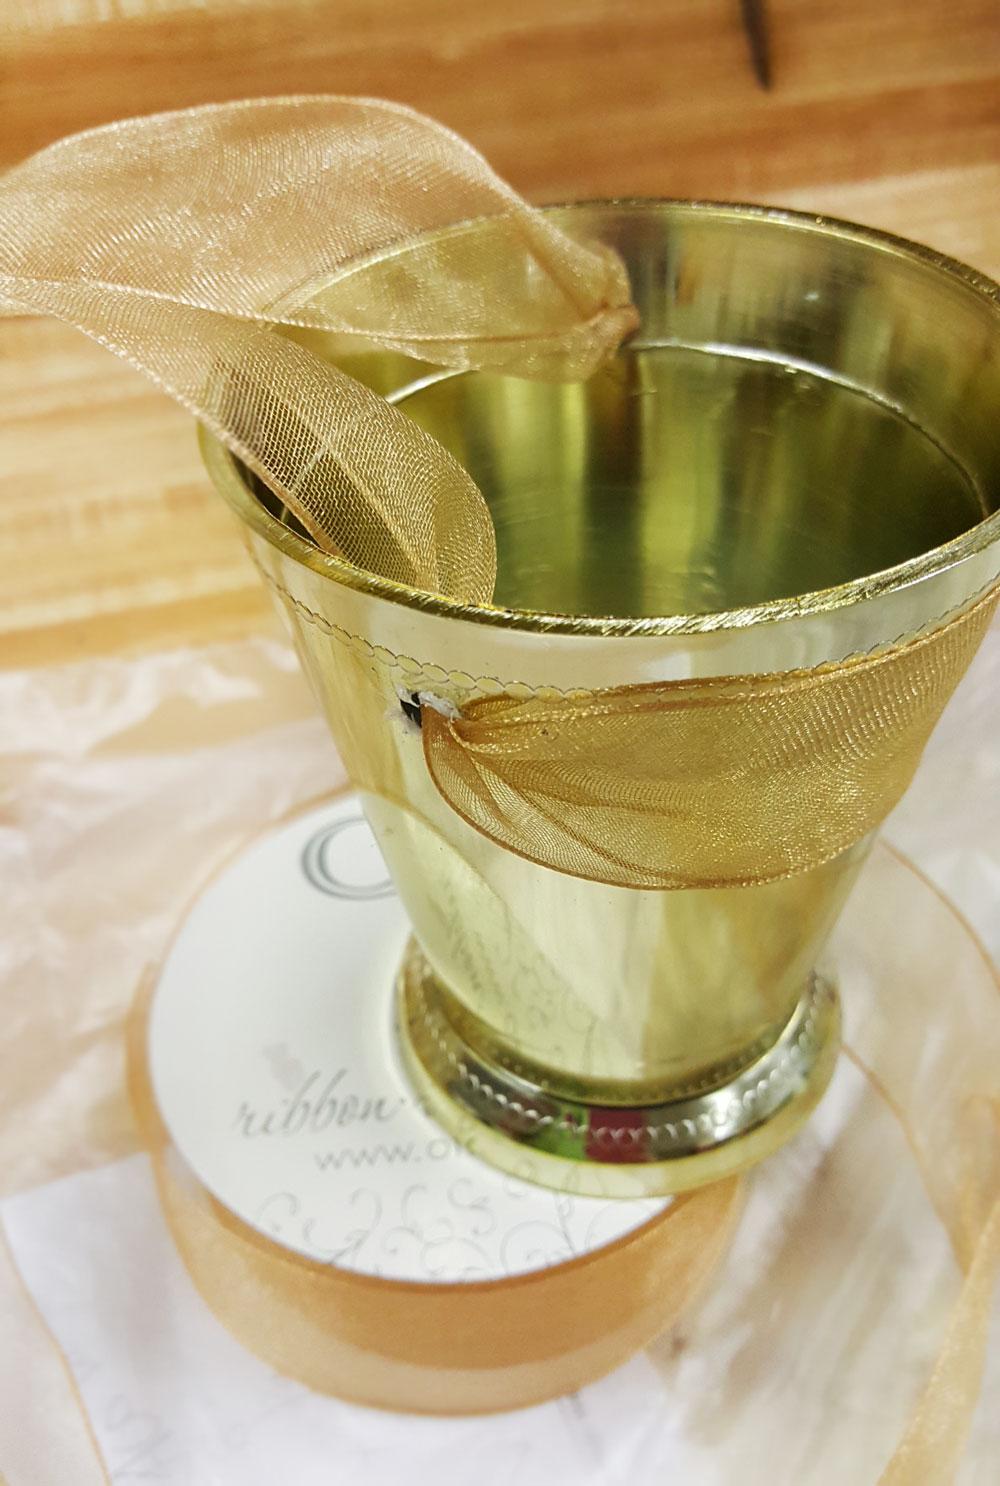 Next, thread your favorite   wired   ribbon through the holes. We like ours to be on the outside of the front of the cup, to give it the most stability preventing anything from spilling forward.Wired ribbon works best, as it will not slip or slide as you tie the ribbon securely to the chair.